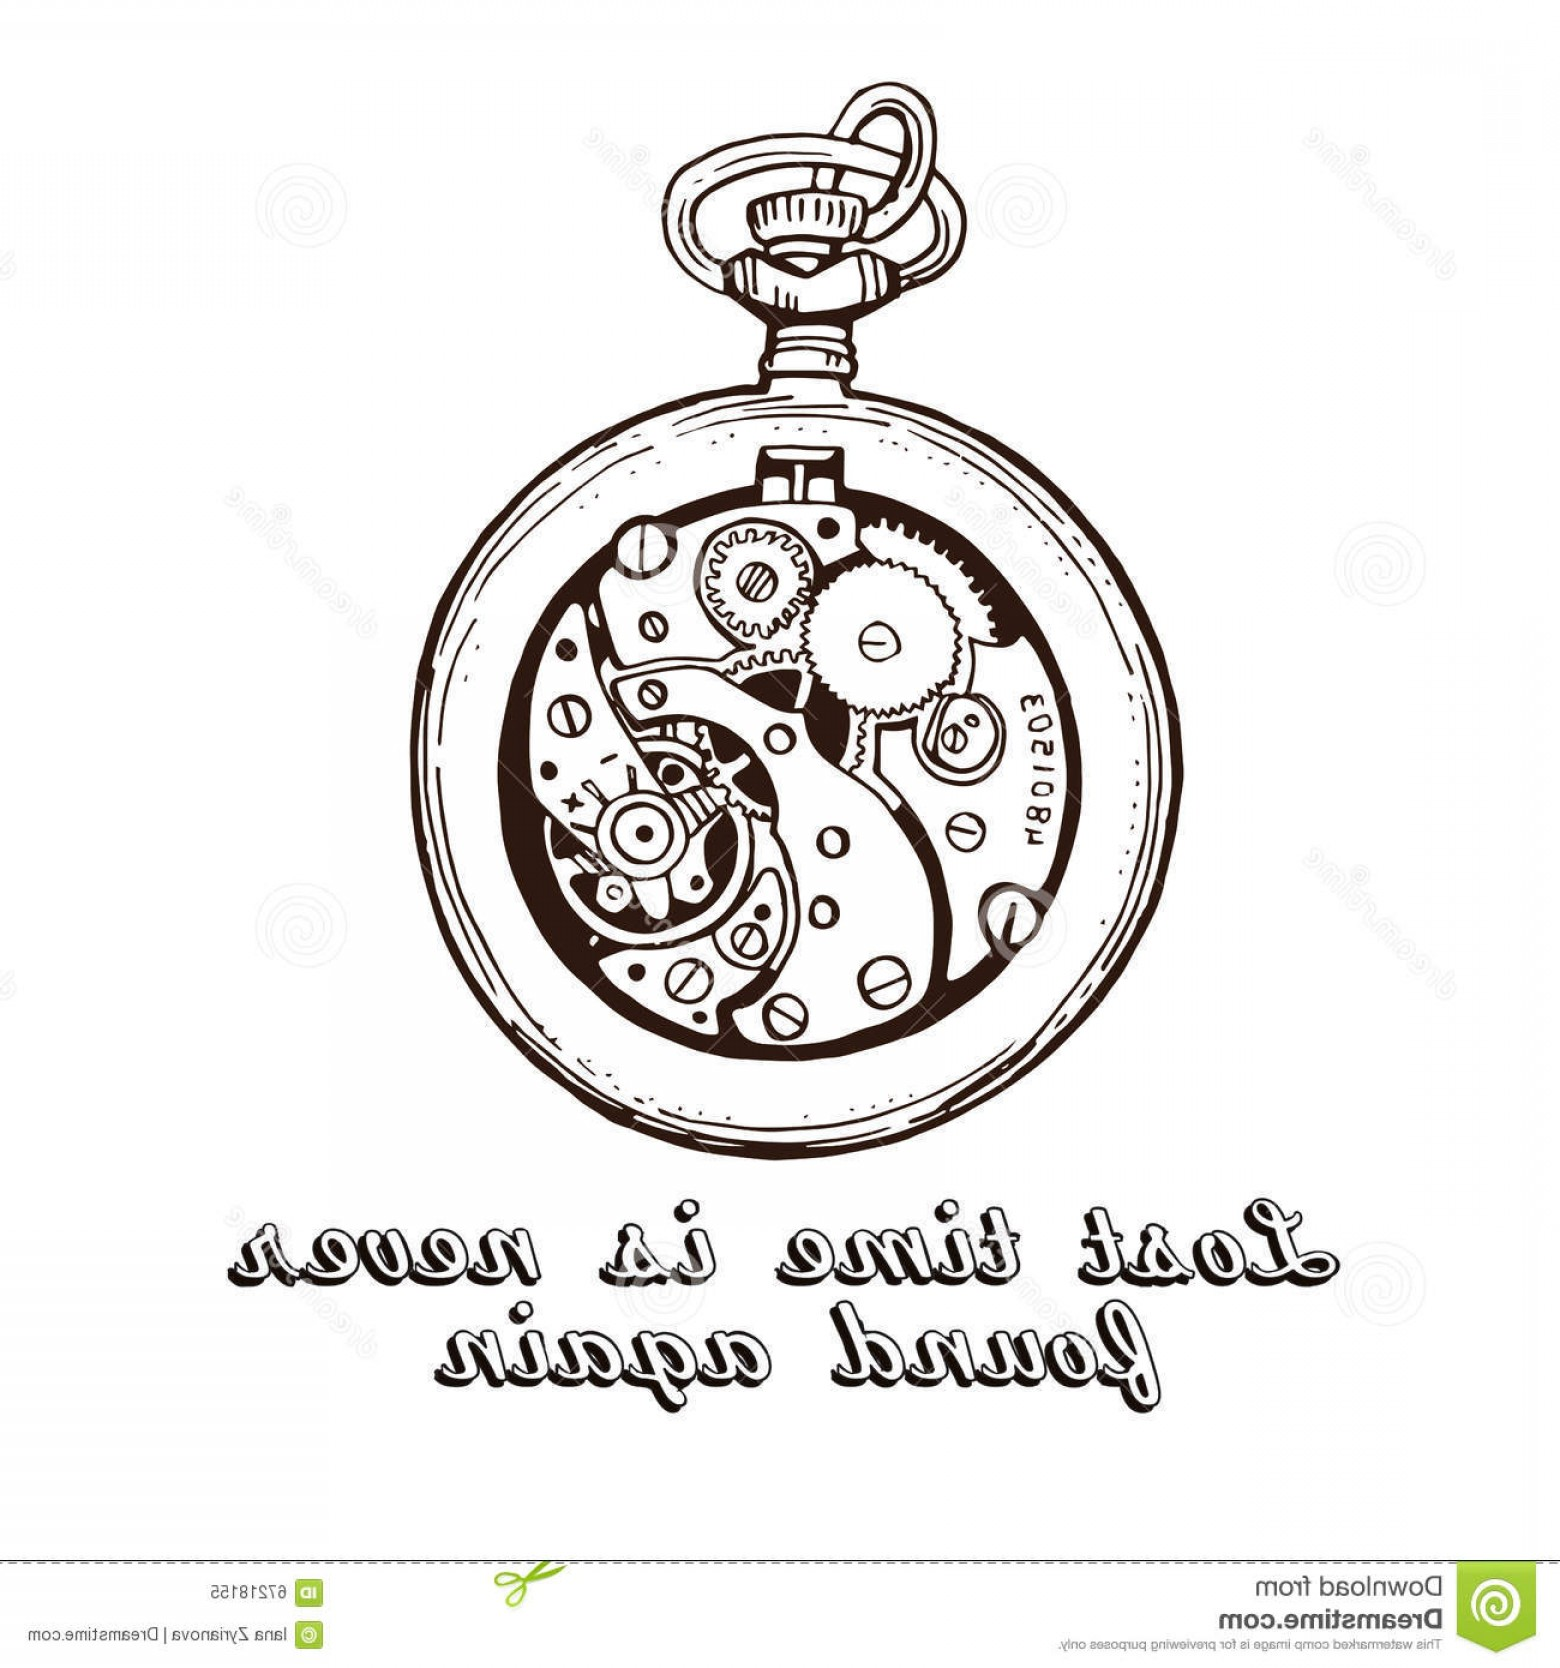 Watch Face Vector: Stock Illustration Hand Drawn Vintage Watch Clock Sketch Vector Illustration Quote Time Image